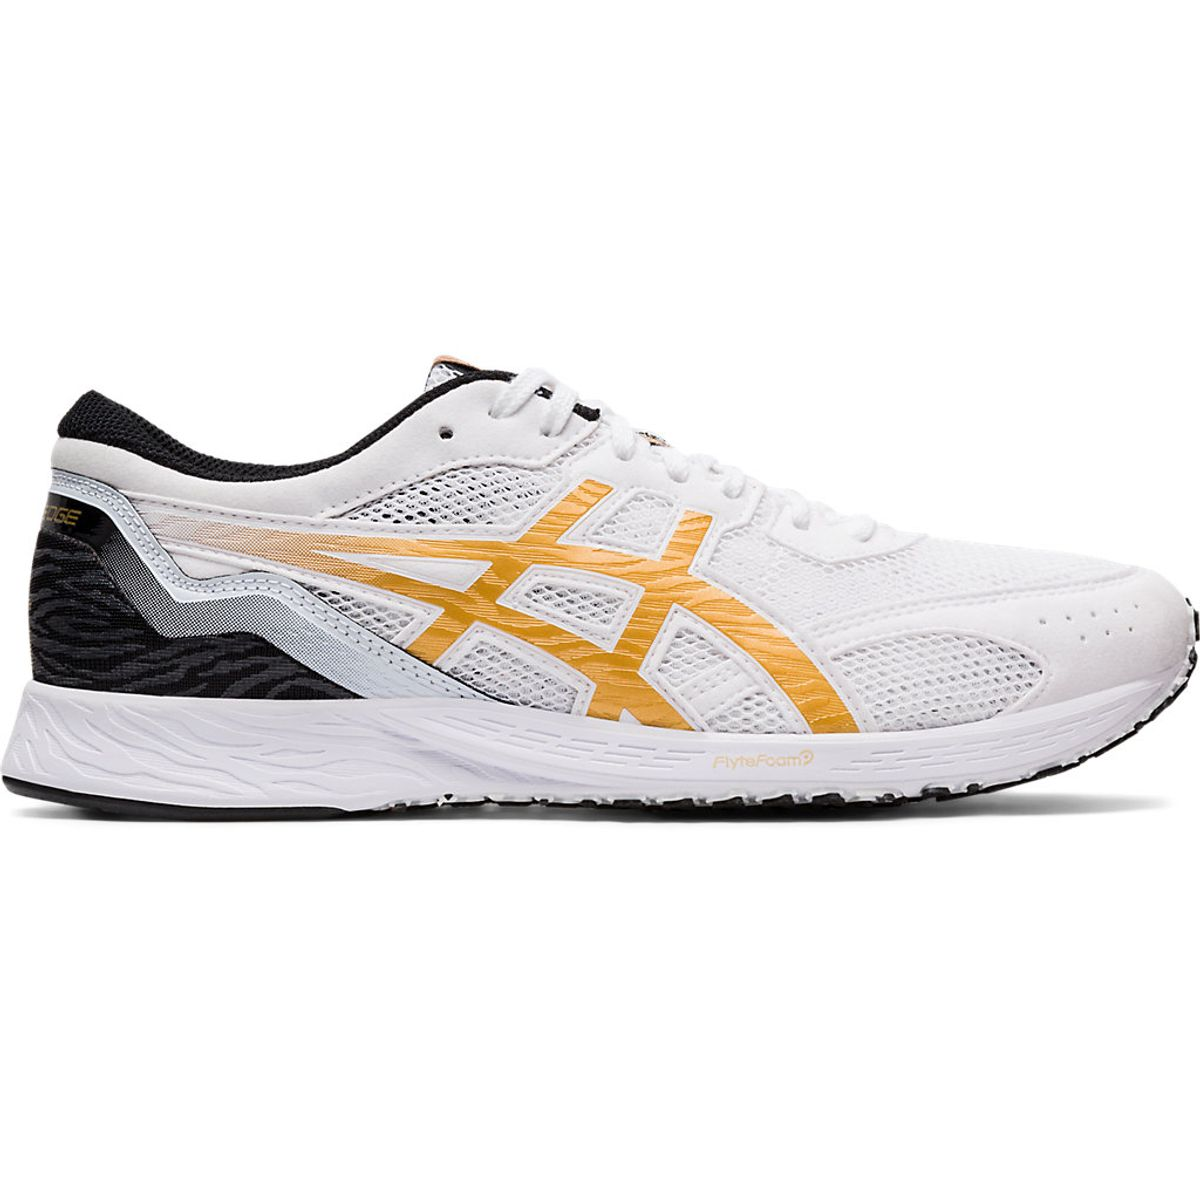 Tenis-Asics-Tartheredge---Masculino---Branco